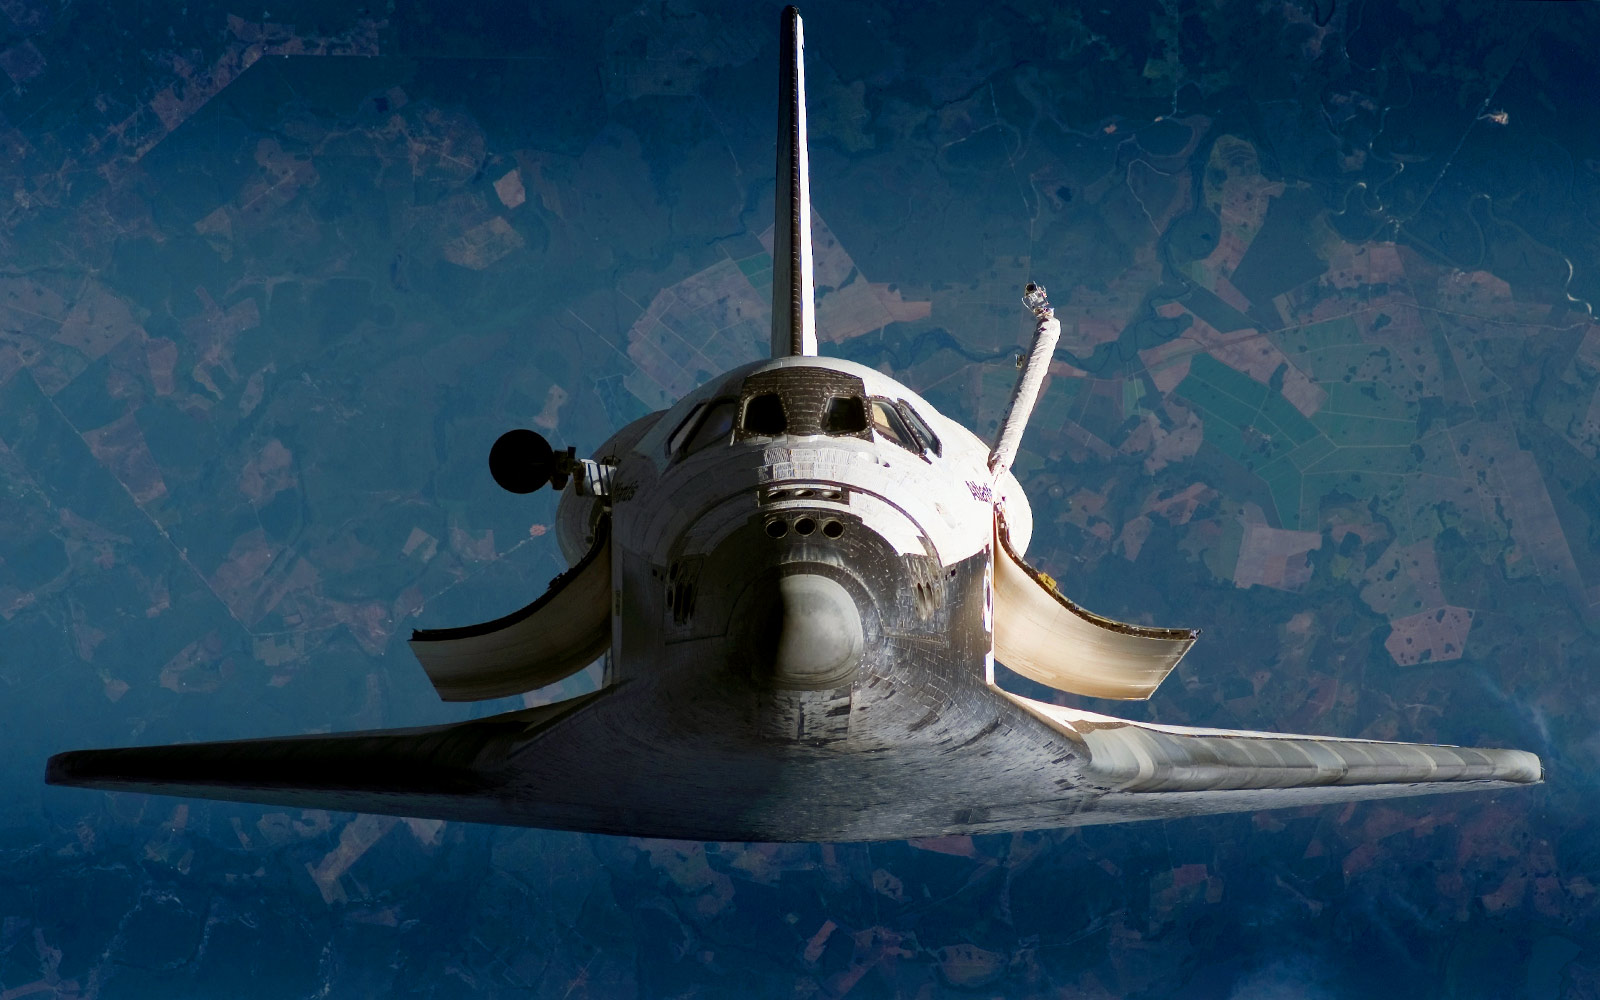 Awesome panoramas put you in the cockpit of real spaceships